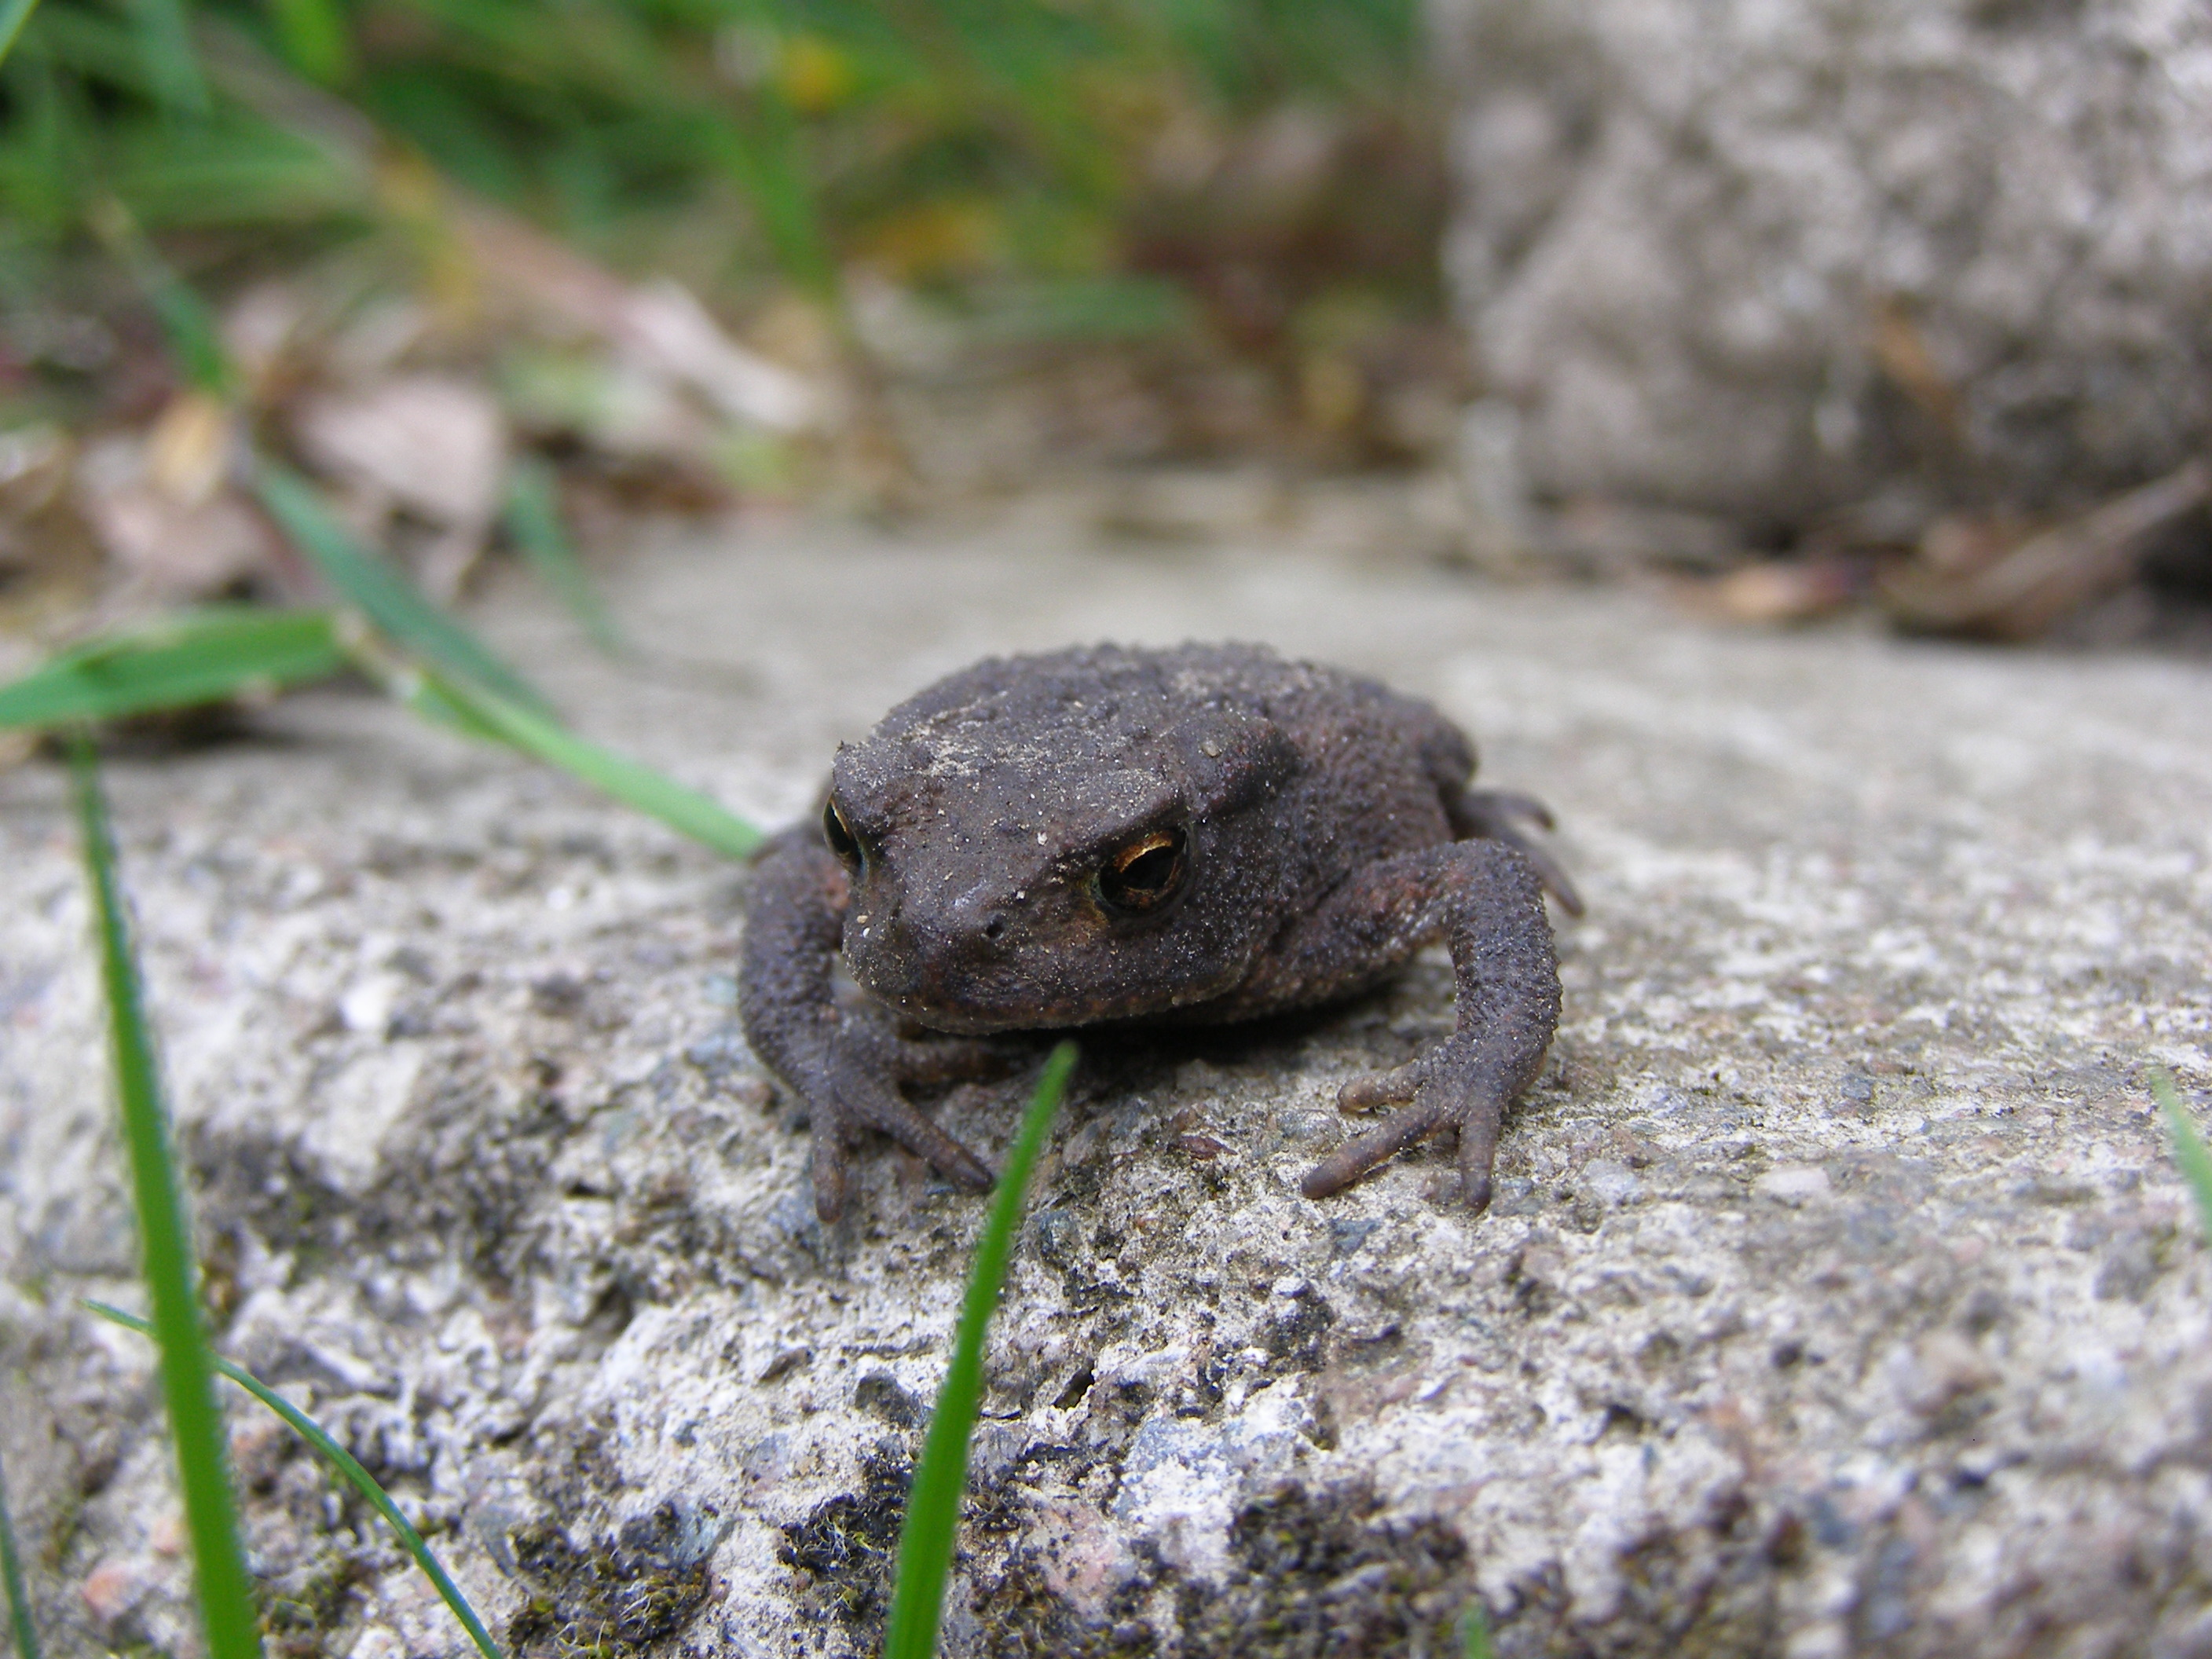 Turn out compost early to avoid disturbing hibernating amphibians